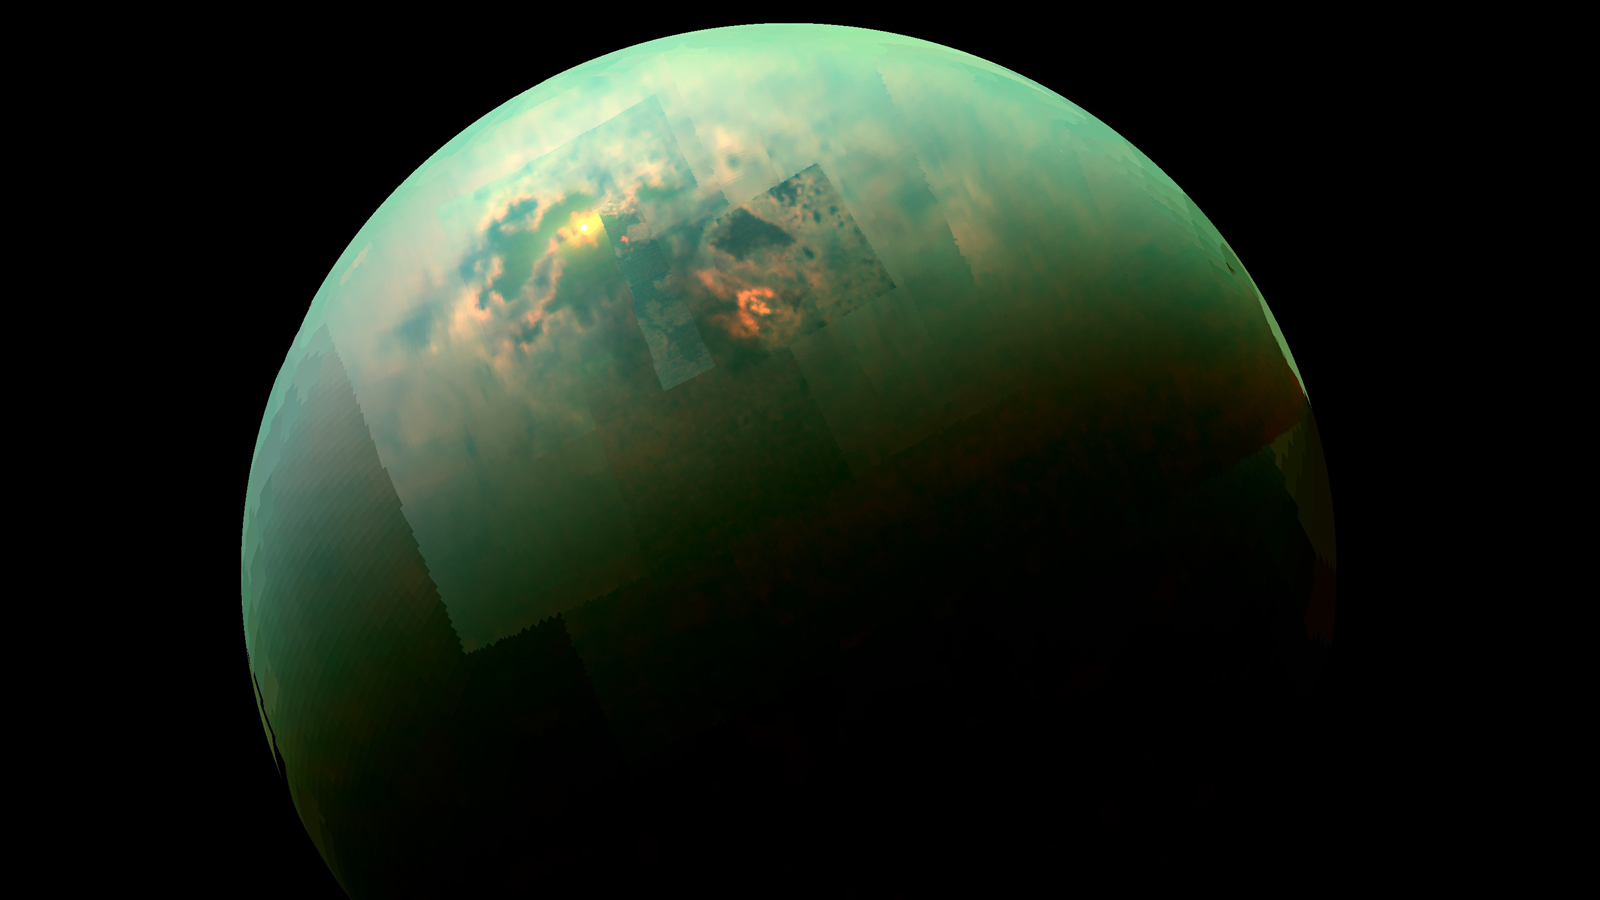 Titan as a mosaic from the Cassini spacecraft. Image credit: JPL/NASA/Univ. of Arizona